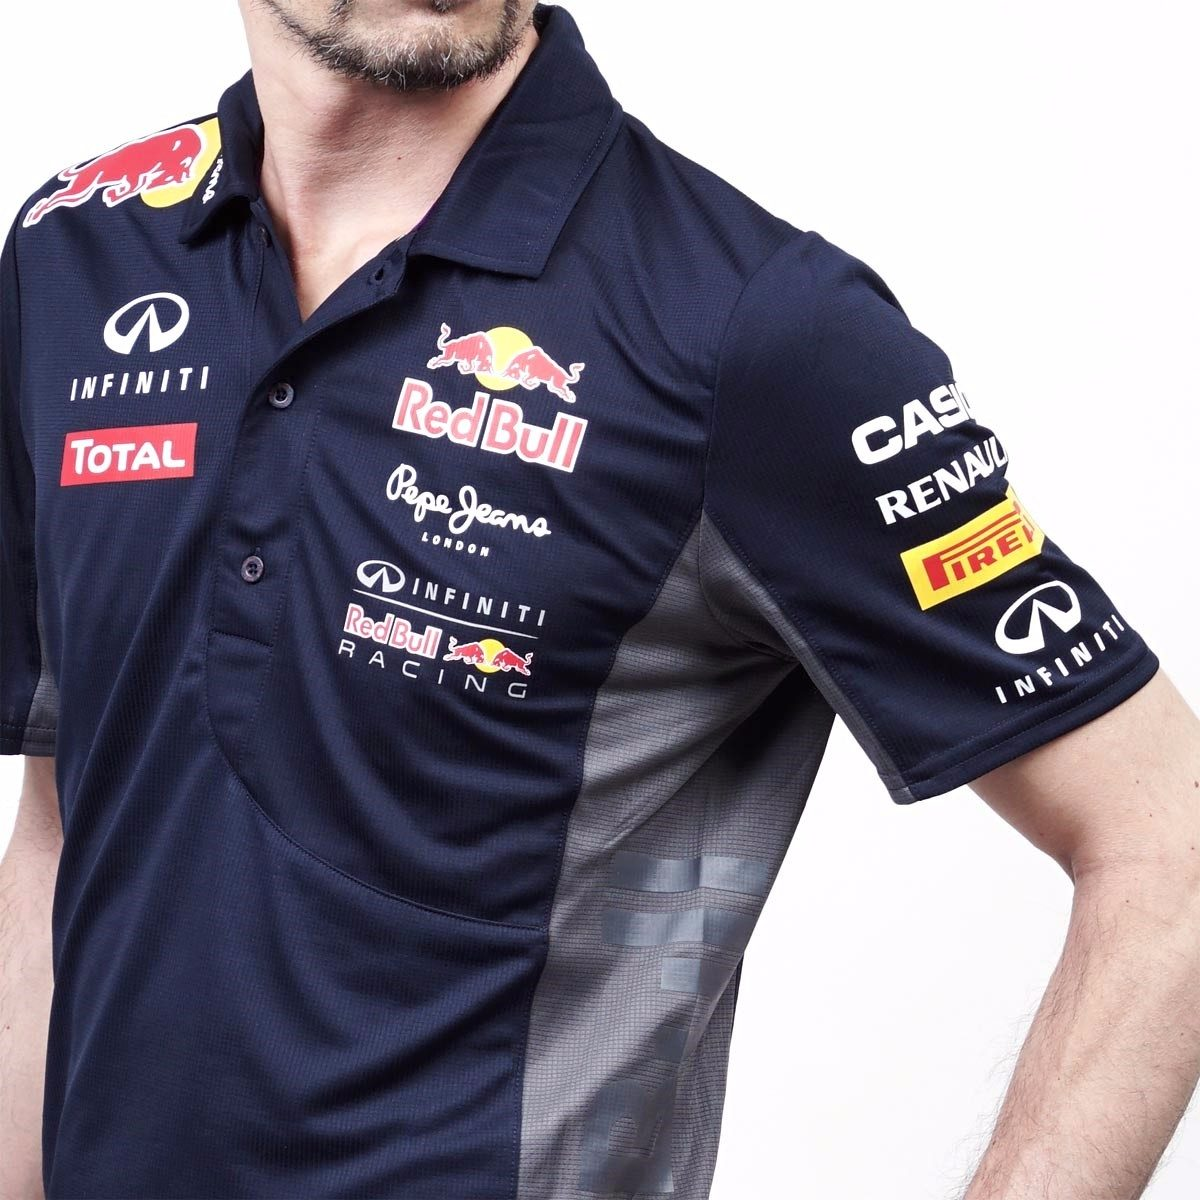 camiseta formula 1 camisa polo oficial red bull racing linda r 149 99 em mercado livre. Black Bedroom Furniture Sets. Home Design Ideas